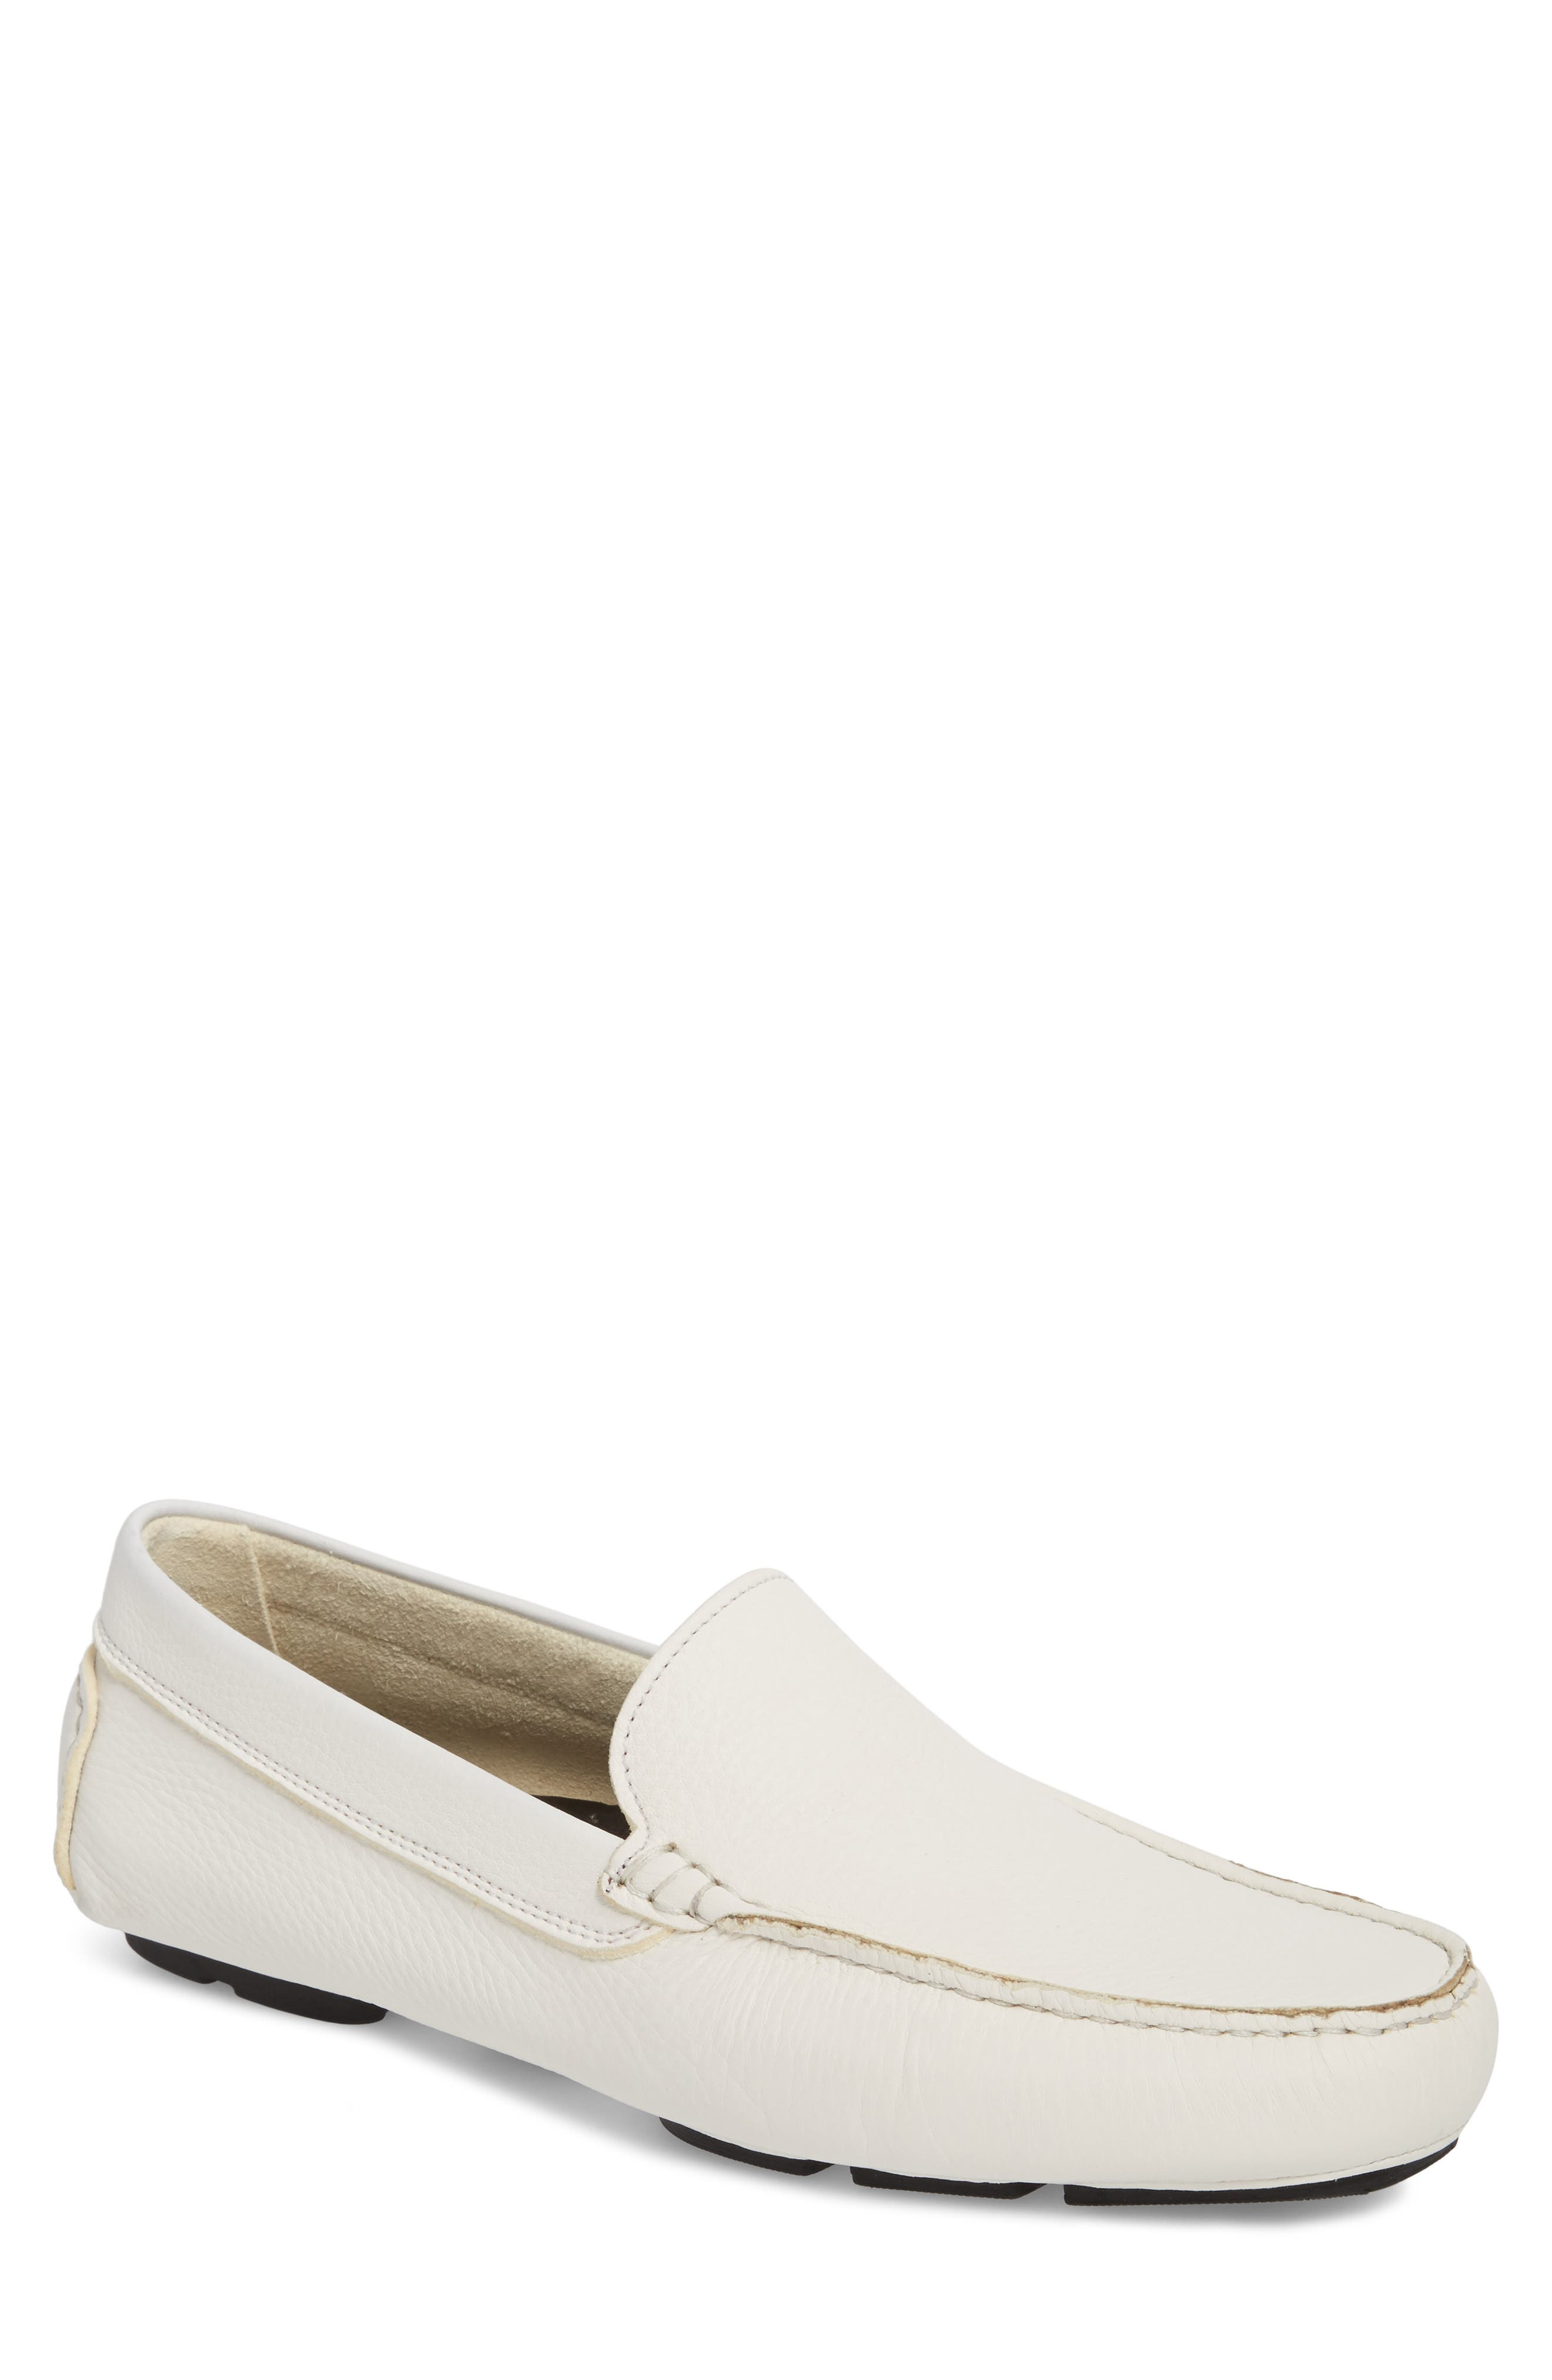 Harlan Driving Loafer,                             Main thumbnail 1, color,                             White Leather